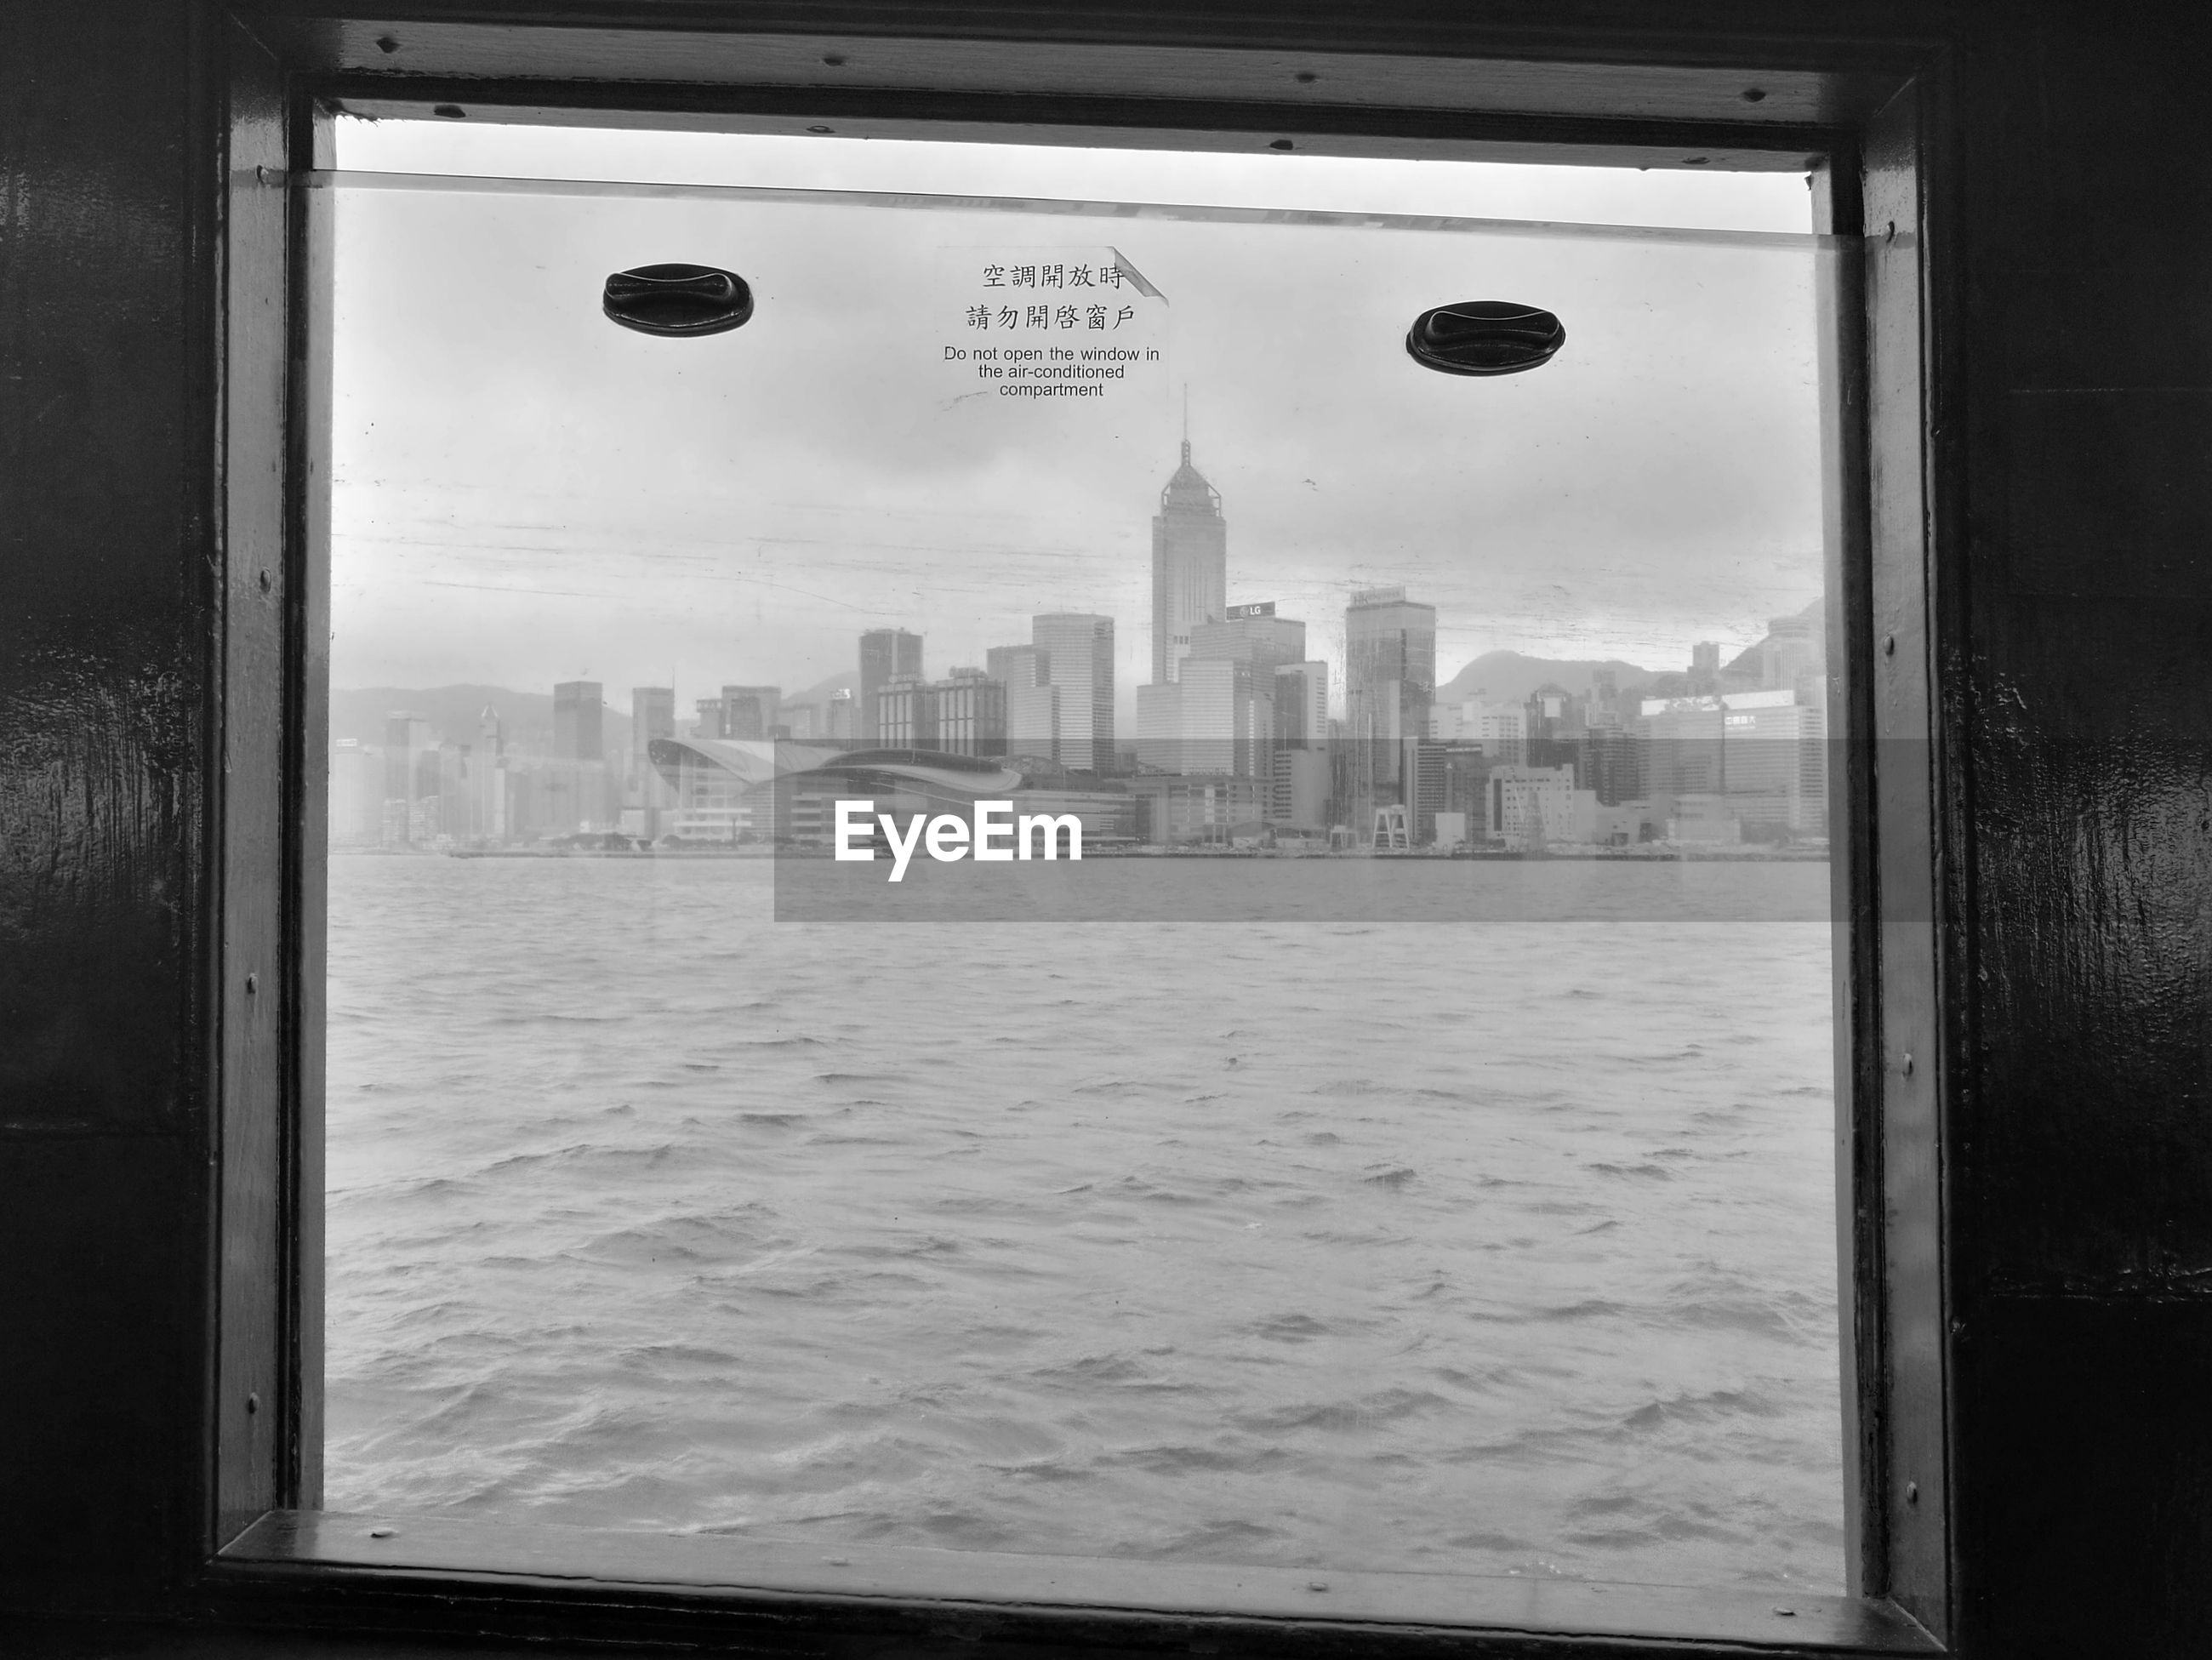 Cityscape by sea against sky seen through star ferry window